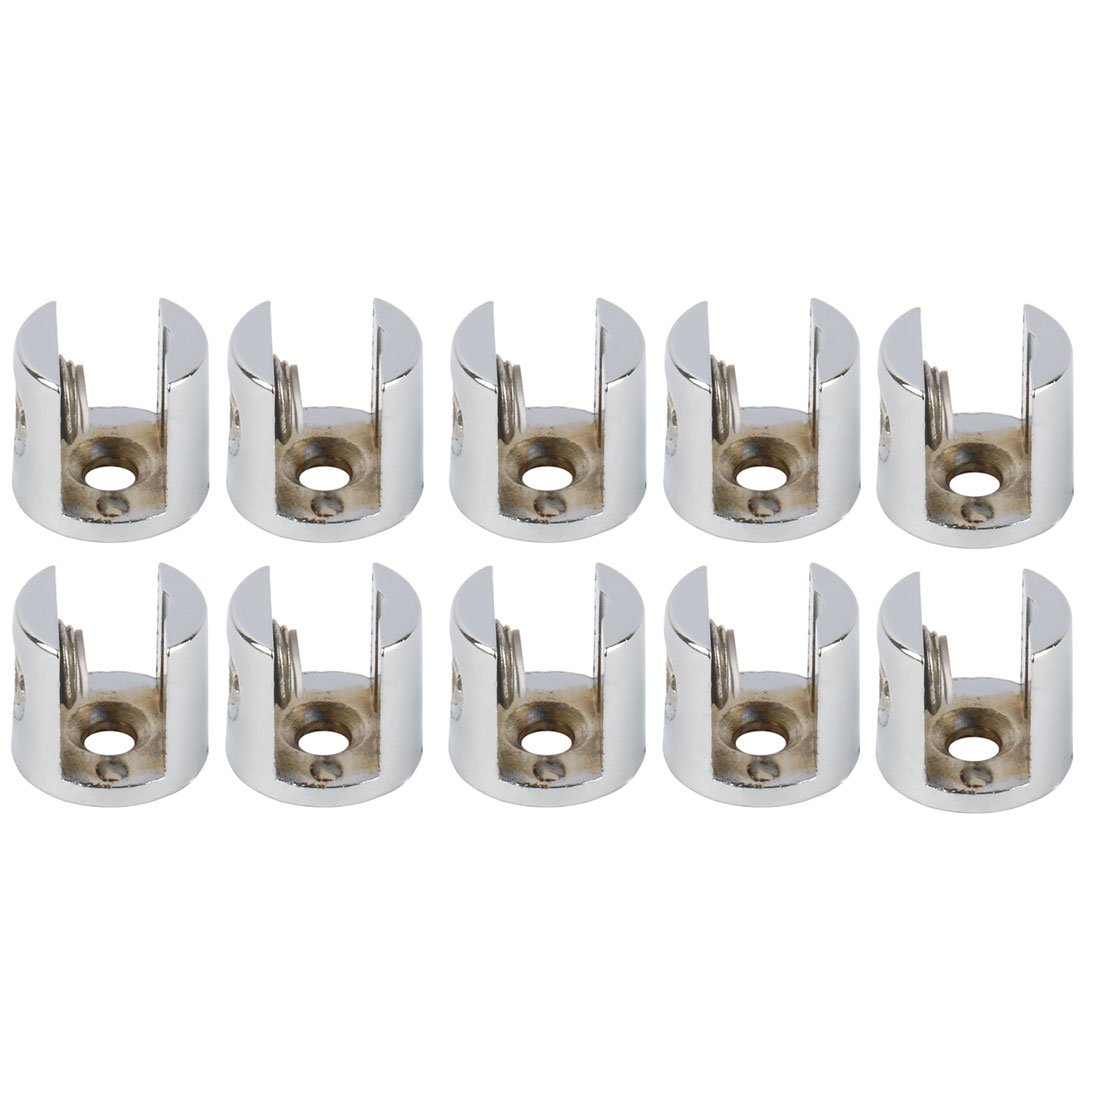 uxcell Zinc Alloy Home Cabinet Door Glass Clamp Brackets Fixing Clips Holder Support 10pcs